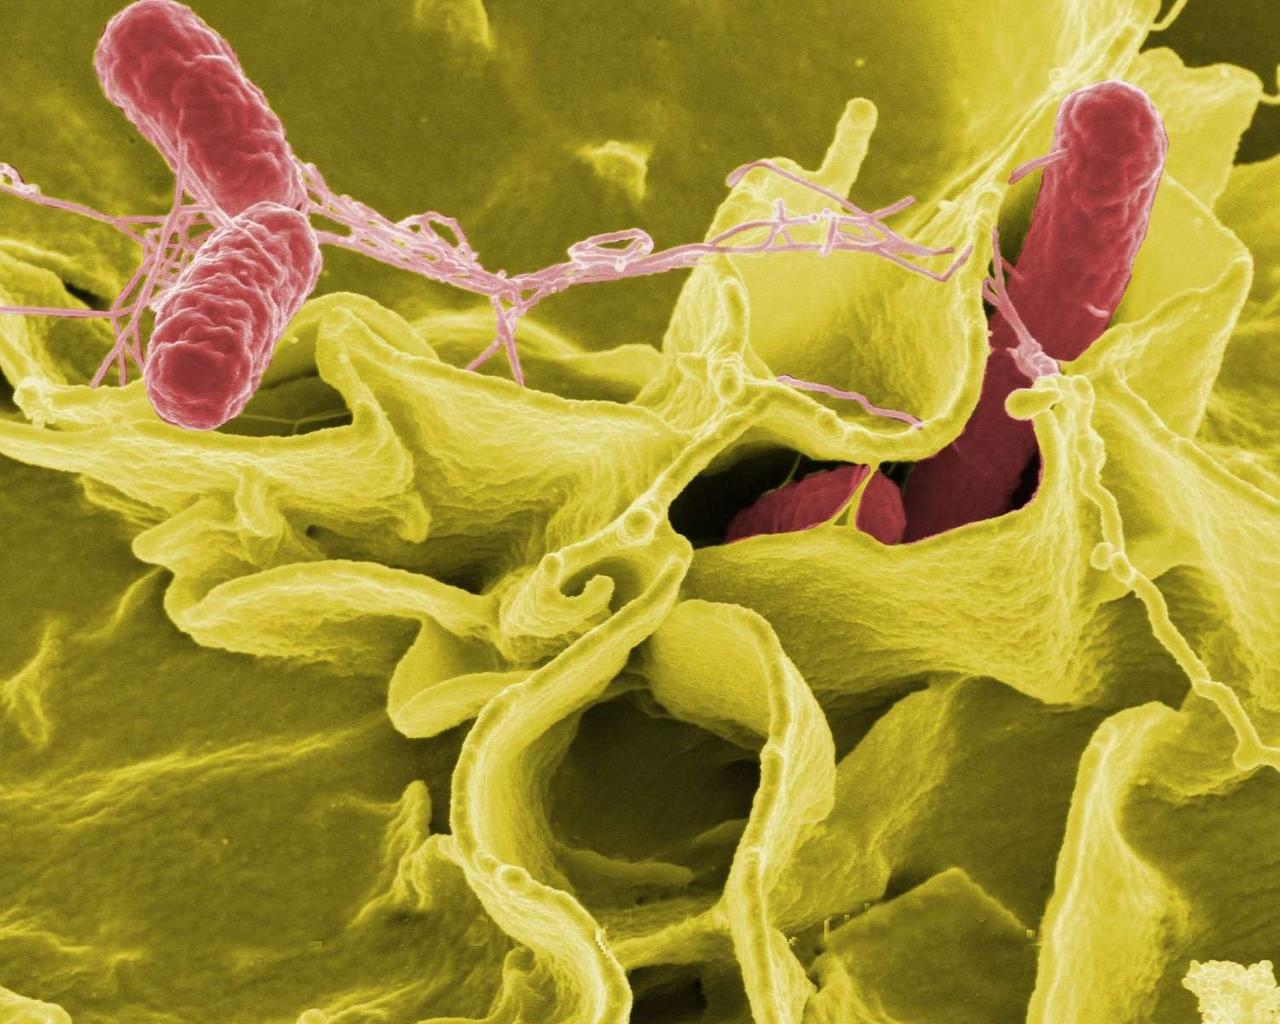 Rapidly Spreading Salmonella Outbreak Reported—Source Currently Unknown